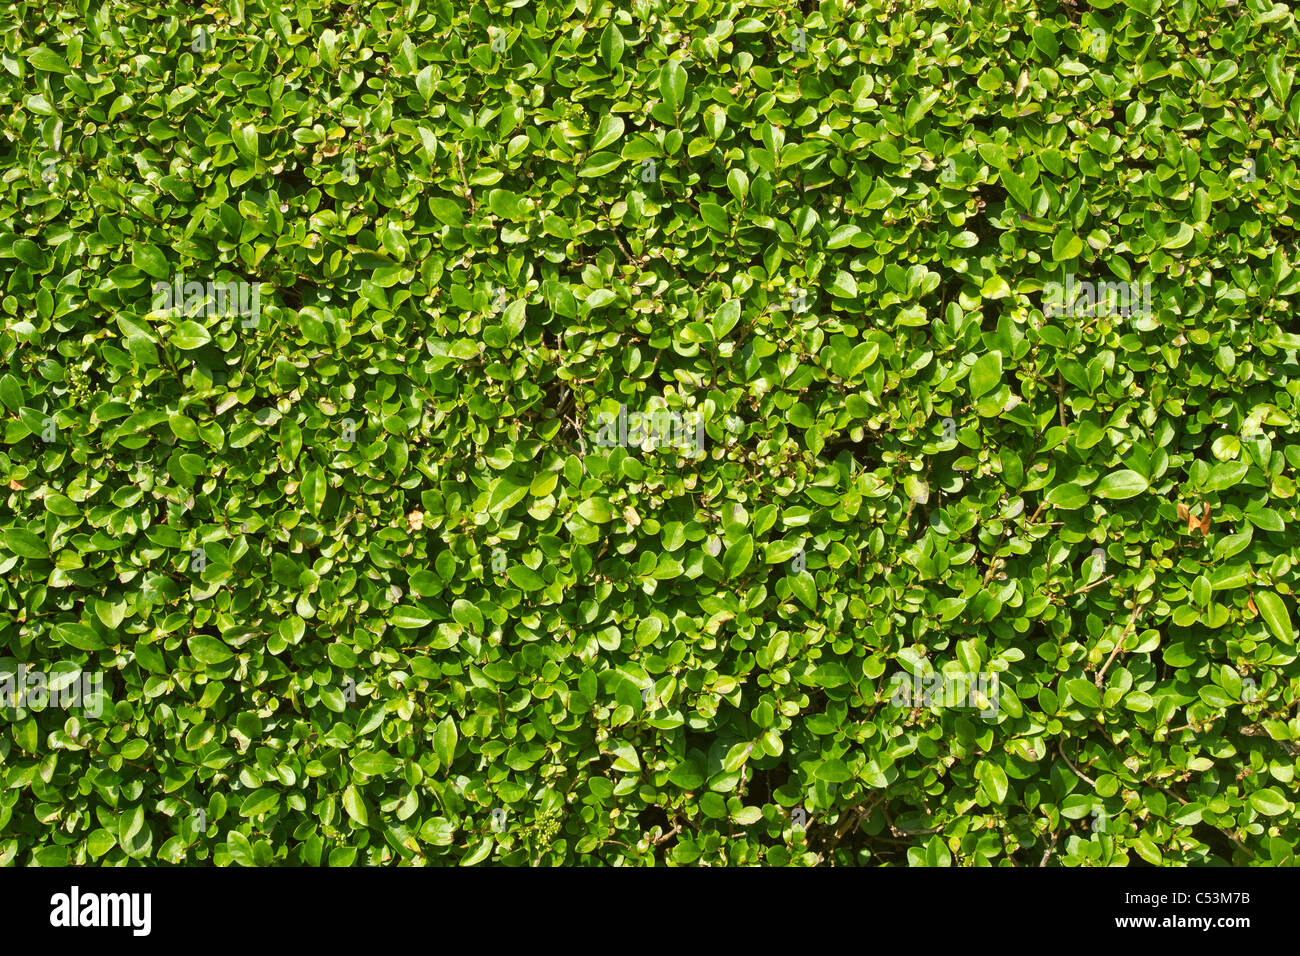 A neatly trimmed garden hedge green leaves close up. - Stock Image